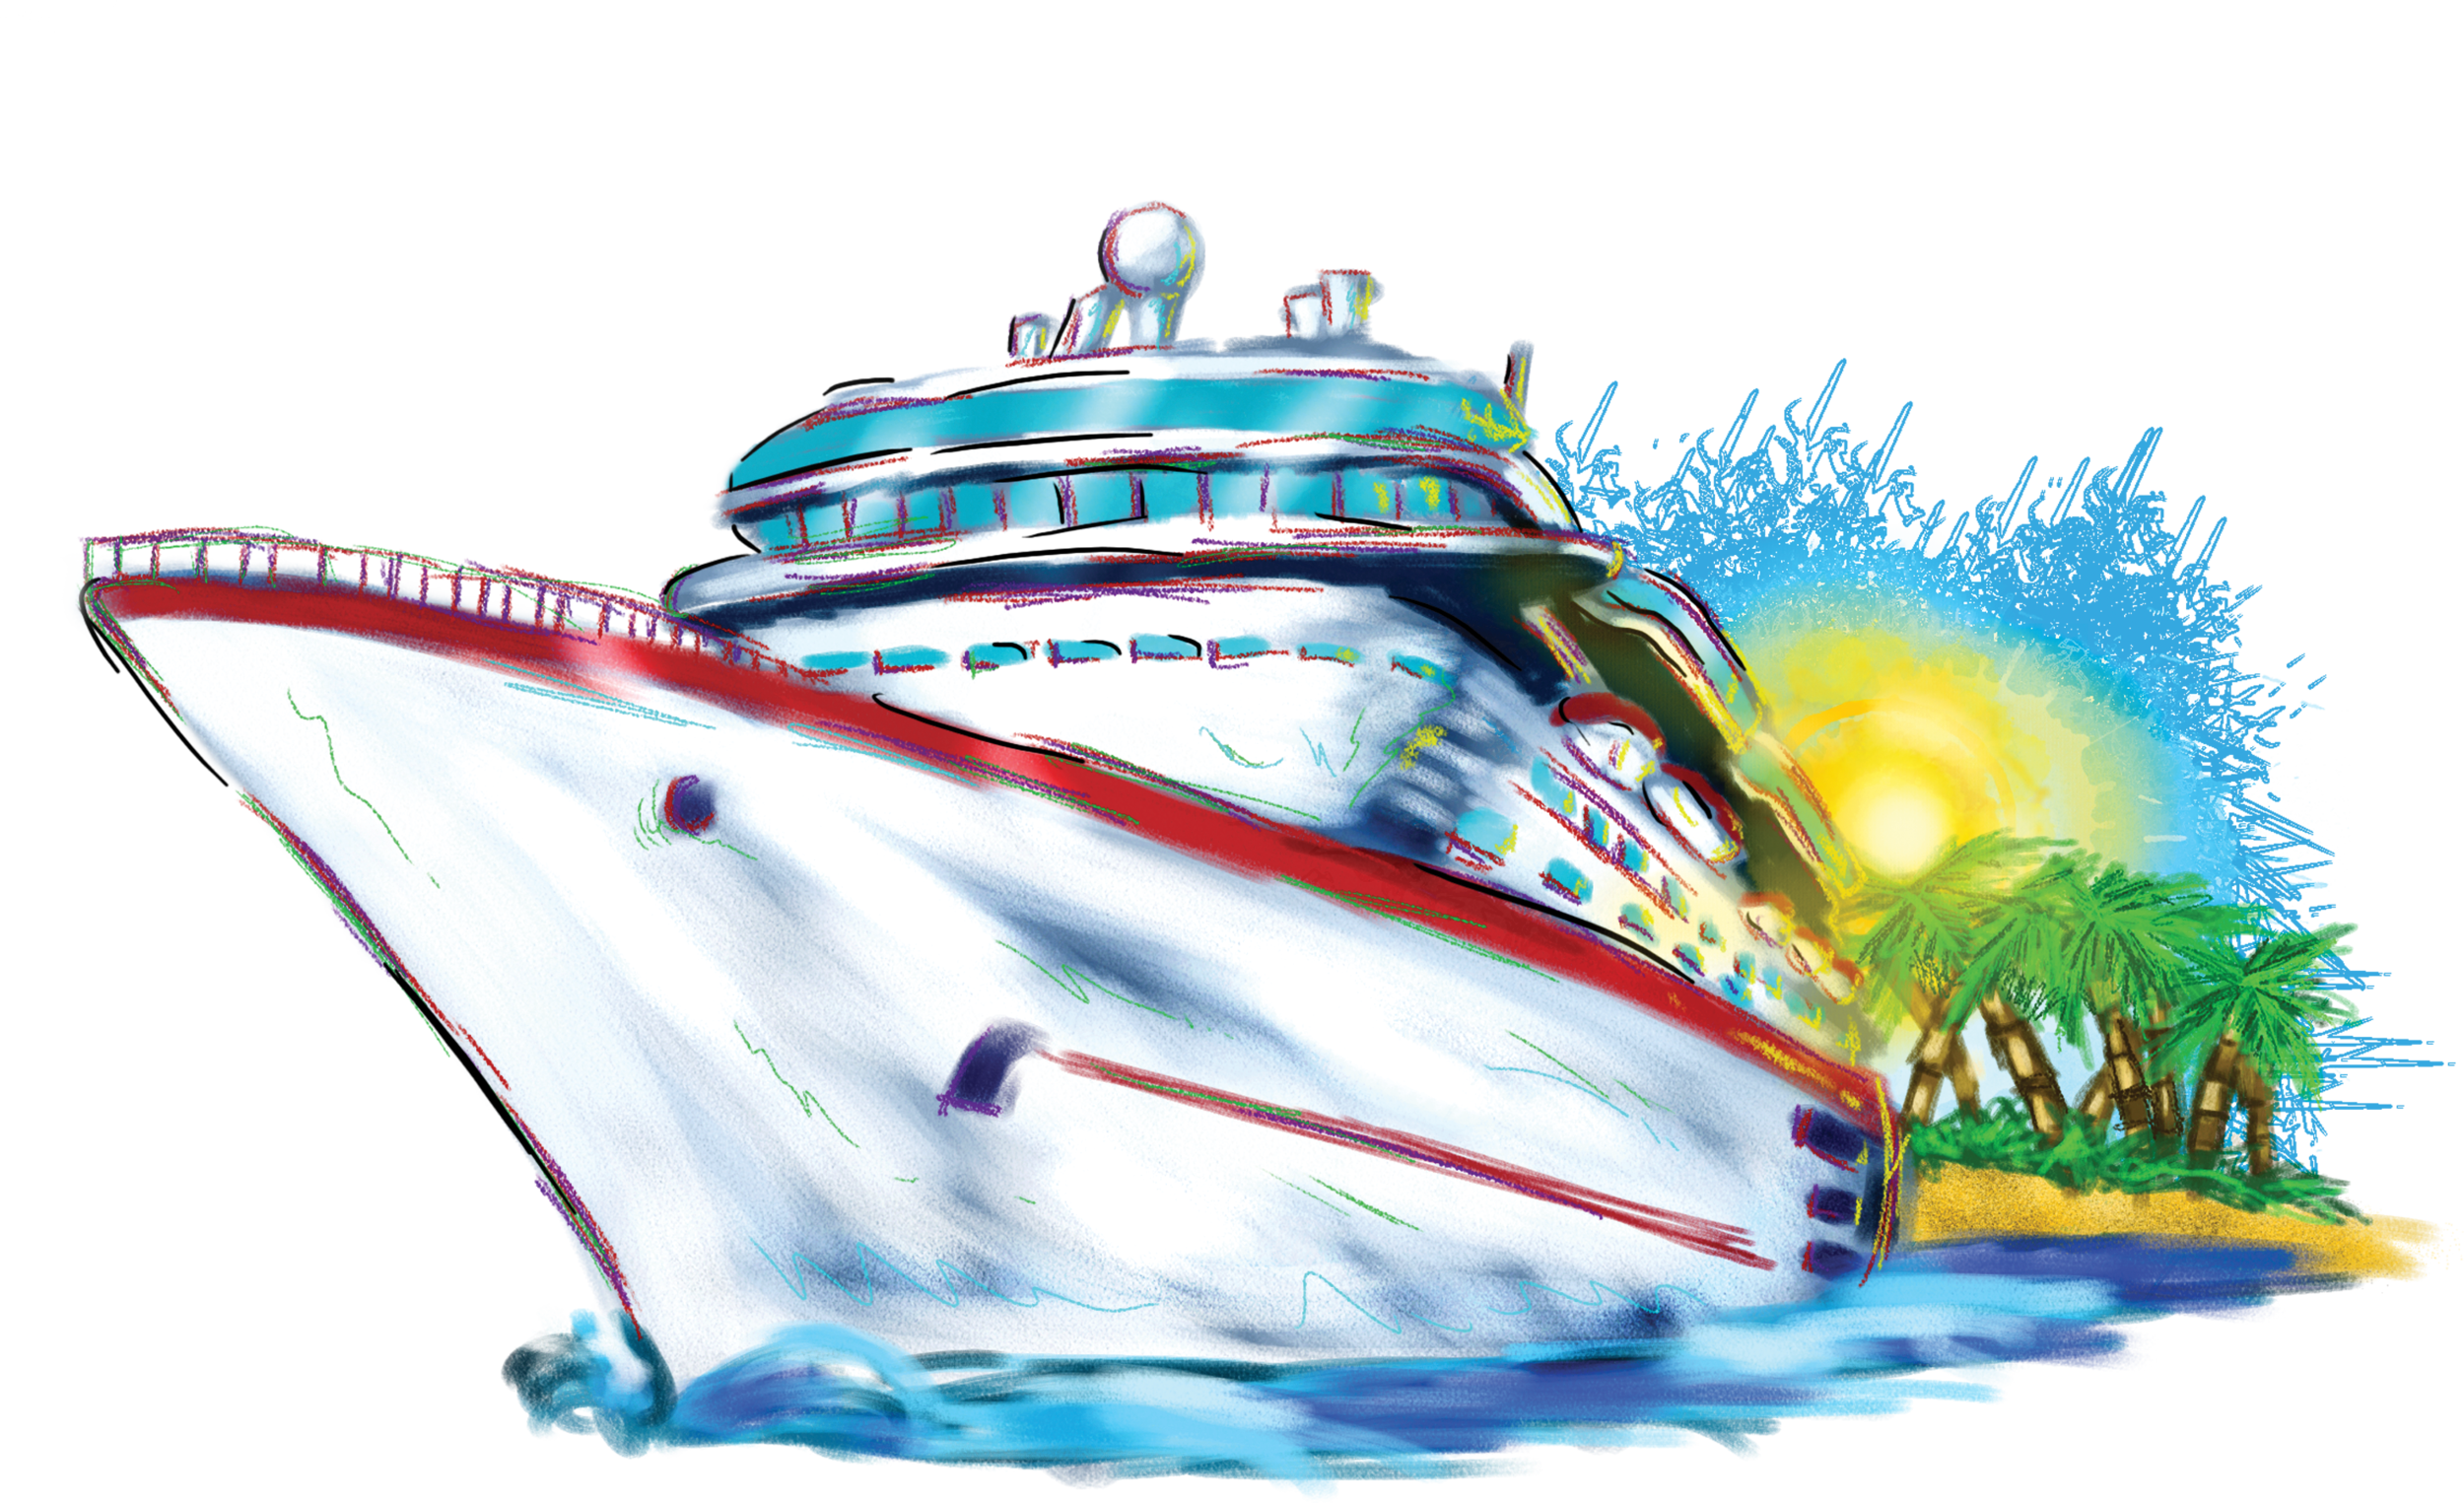 Vacation Cruise Ship The - Cruise Ship, Transparent background PNG HD thumbnail